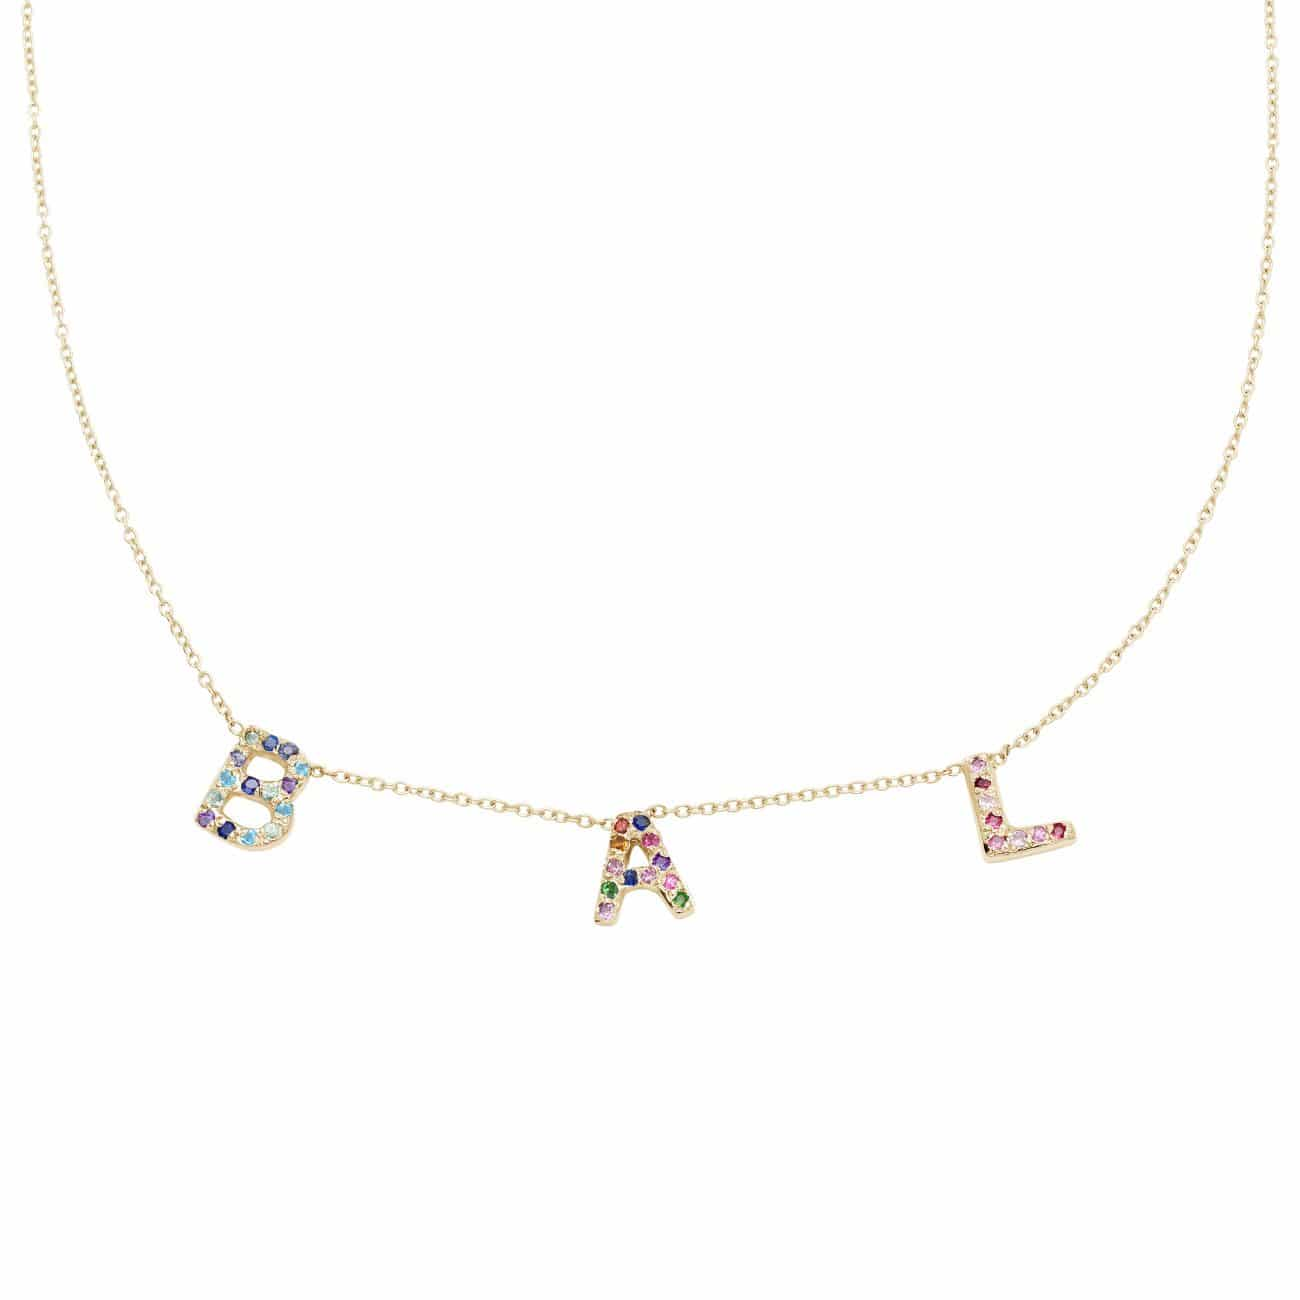 3 Letter Necklace in 14k Yellow Gold